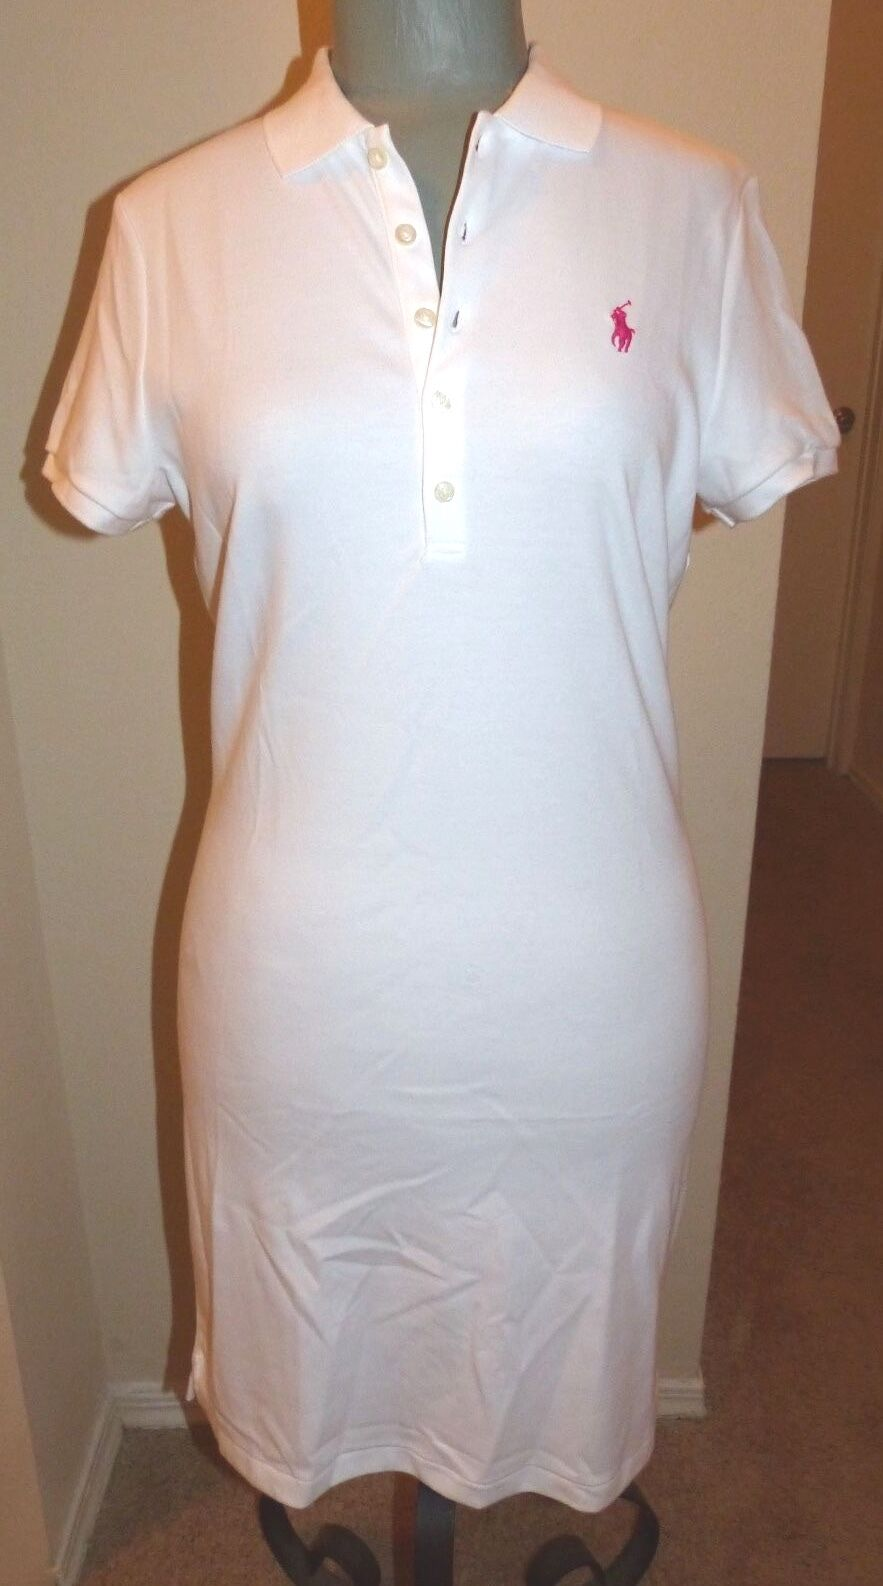 POLO RALPH LAUREN Ladies Classic Polo Dress  Weiß  Größe MEDIUM  NWT